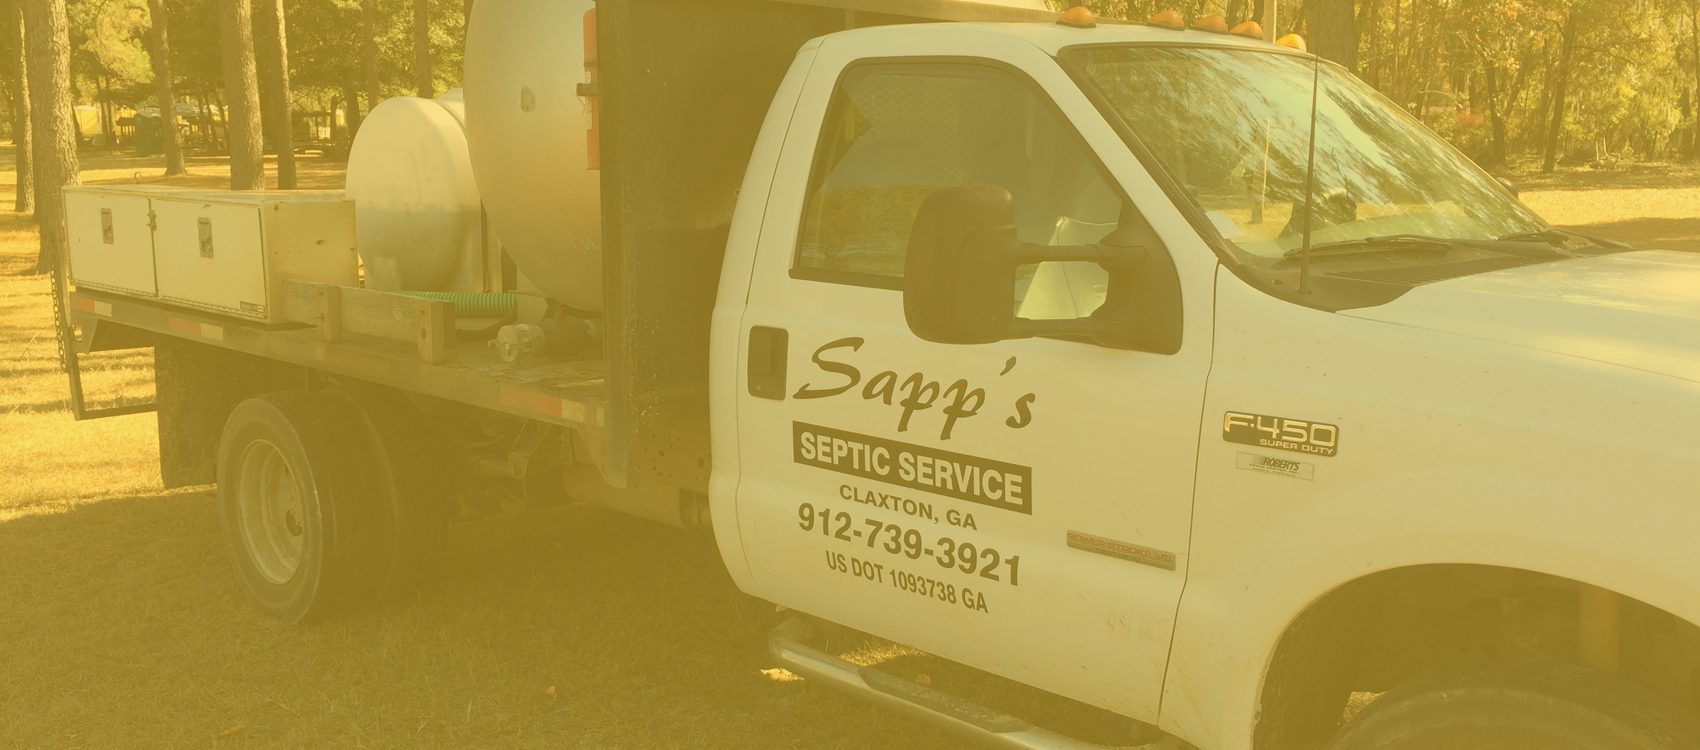 septic-tank-pump-truck